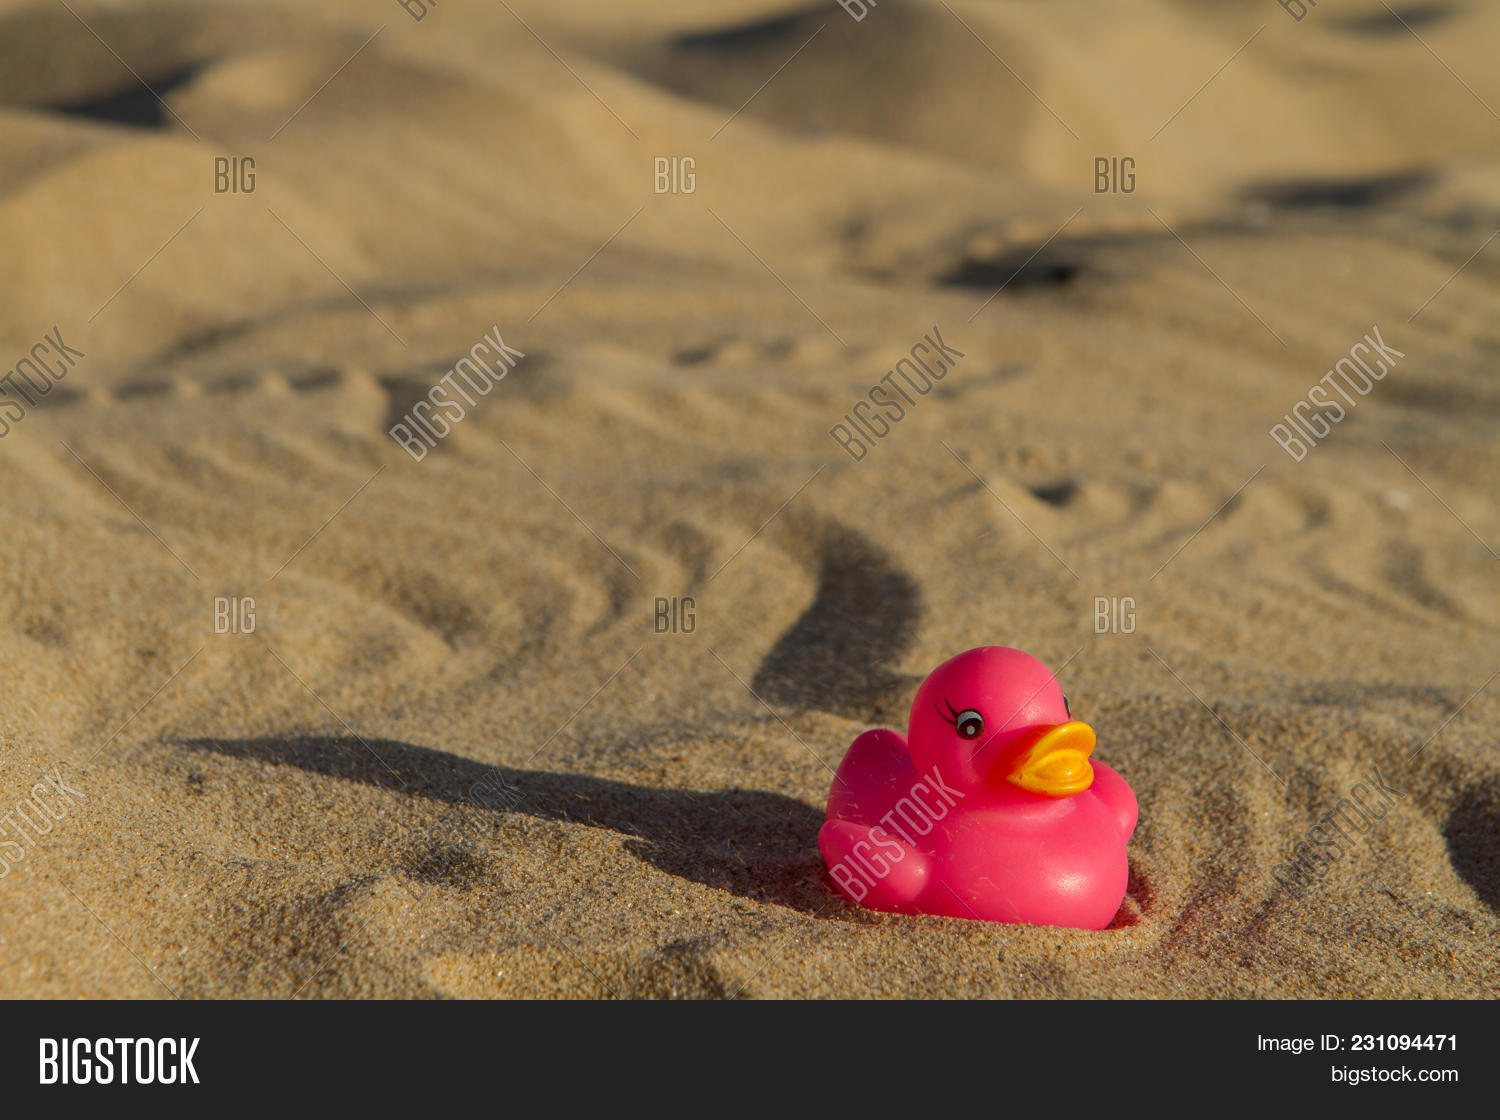 Pink Rubber Toy Duck Image & Photo (Free Trial) | Bigstock